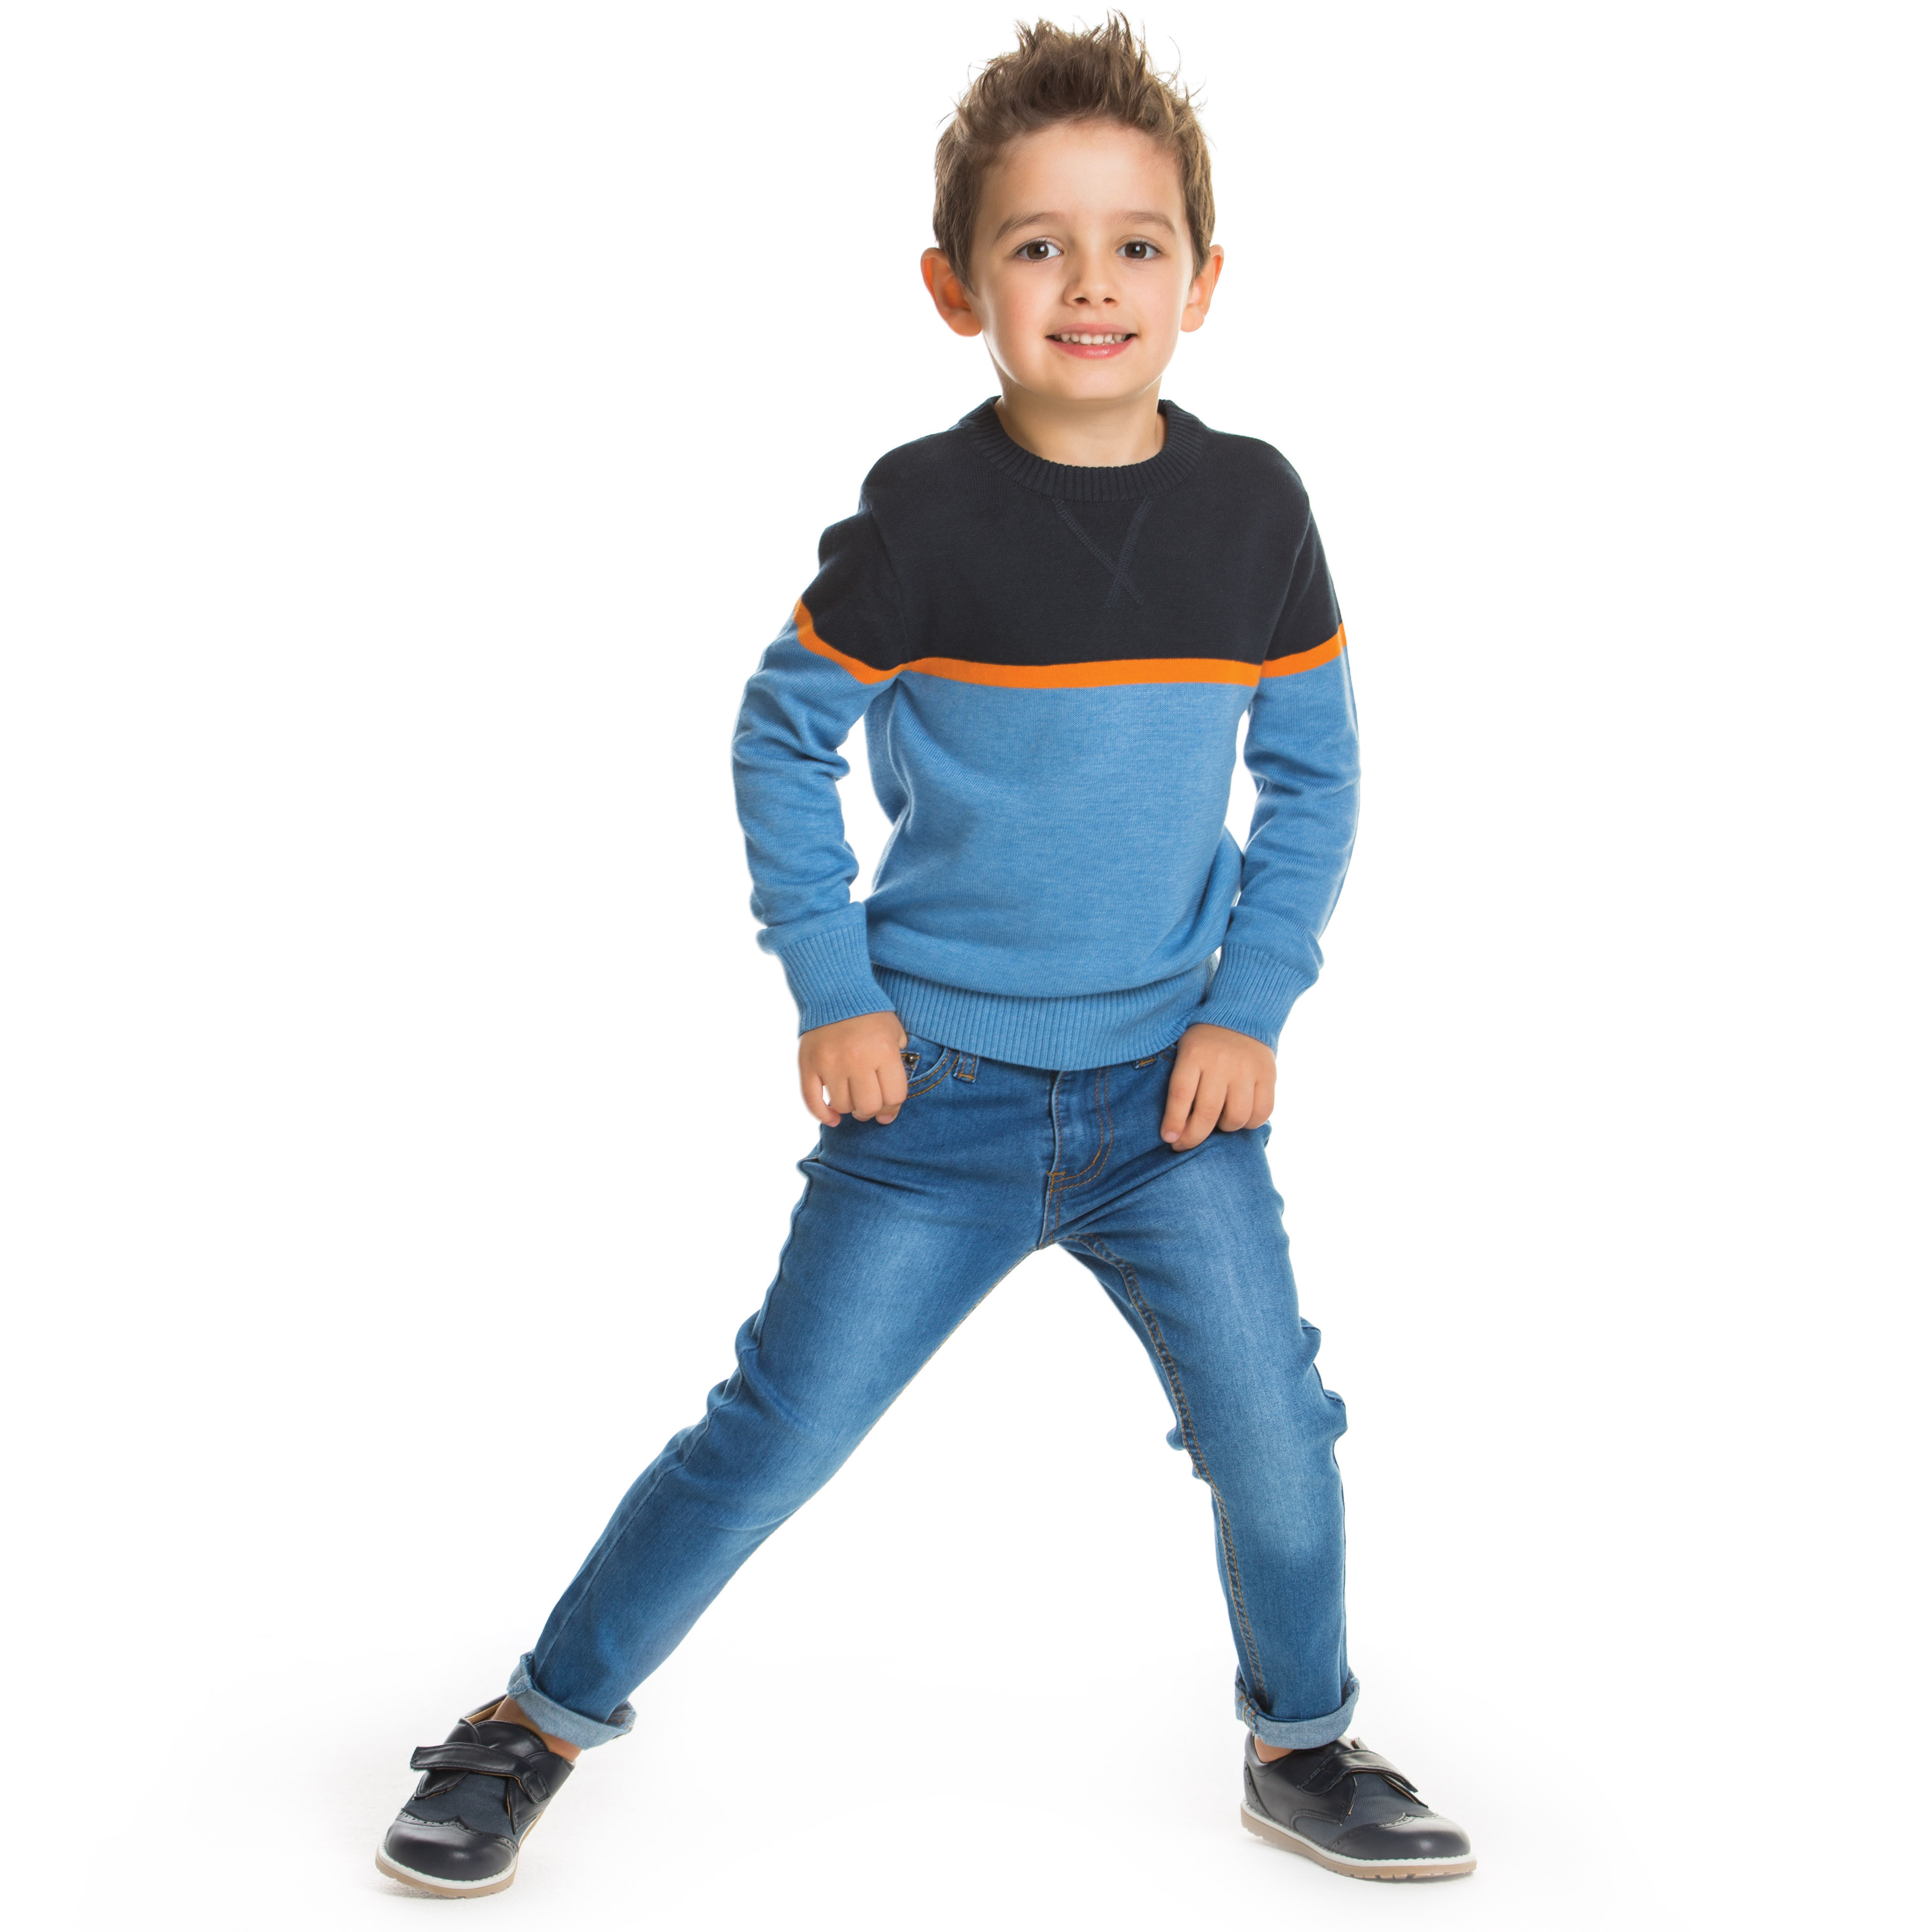 Junior boy wearing a sweater and jeans